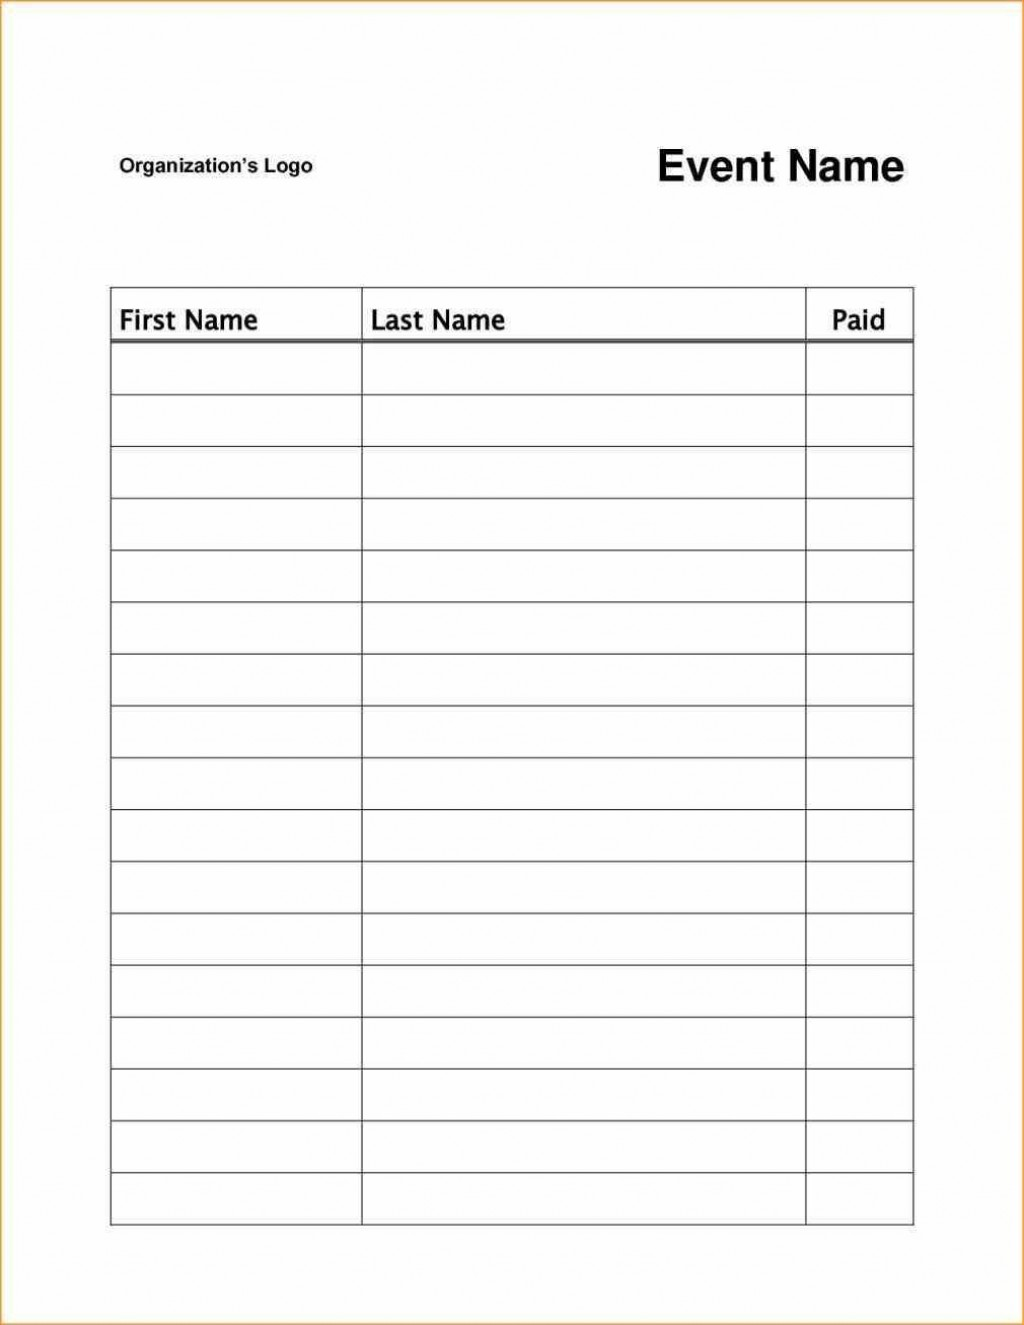 003 Surprising Sign Up Sheet Template Image  Staff In OfficeLarge